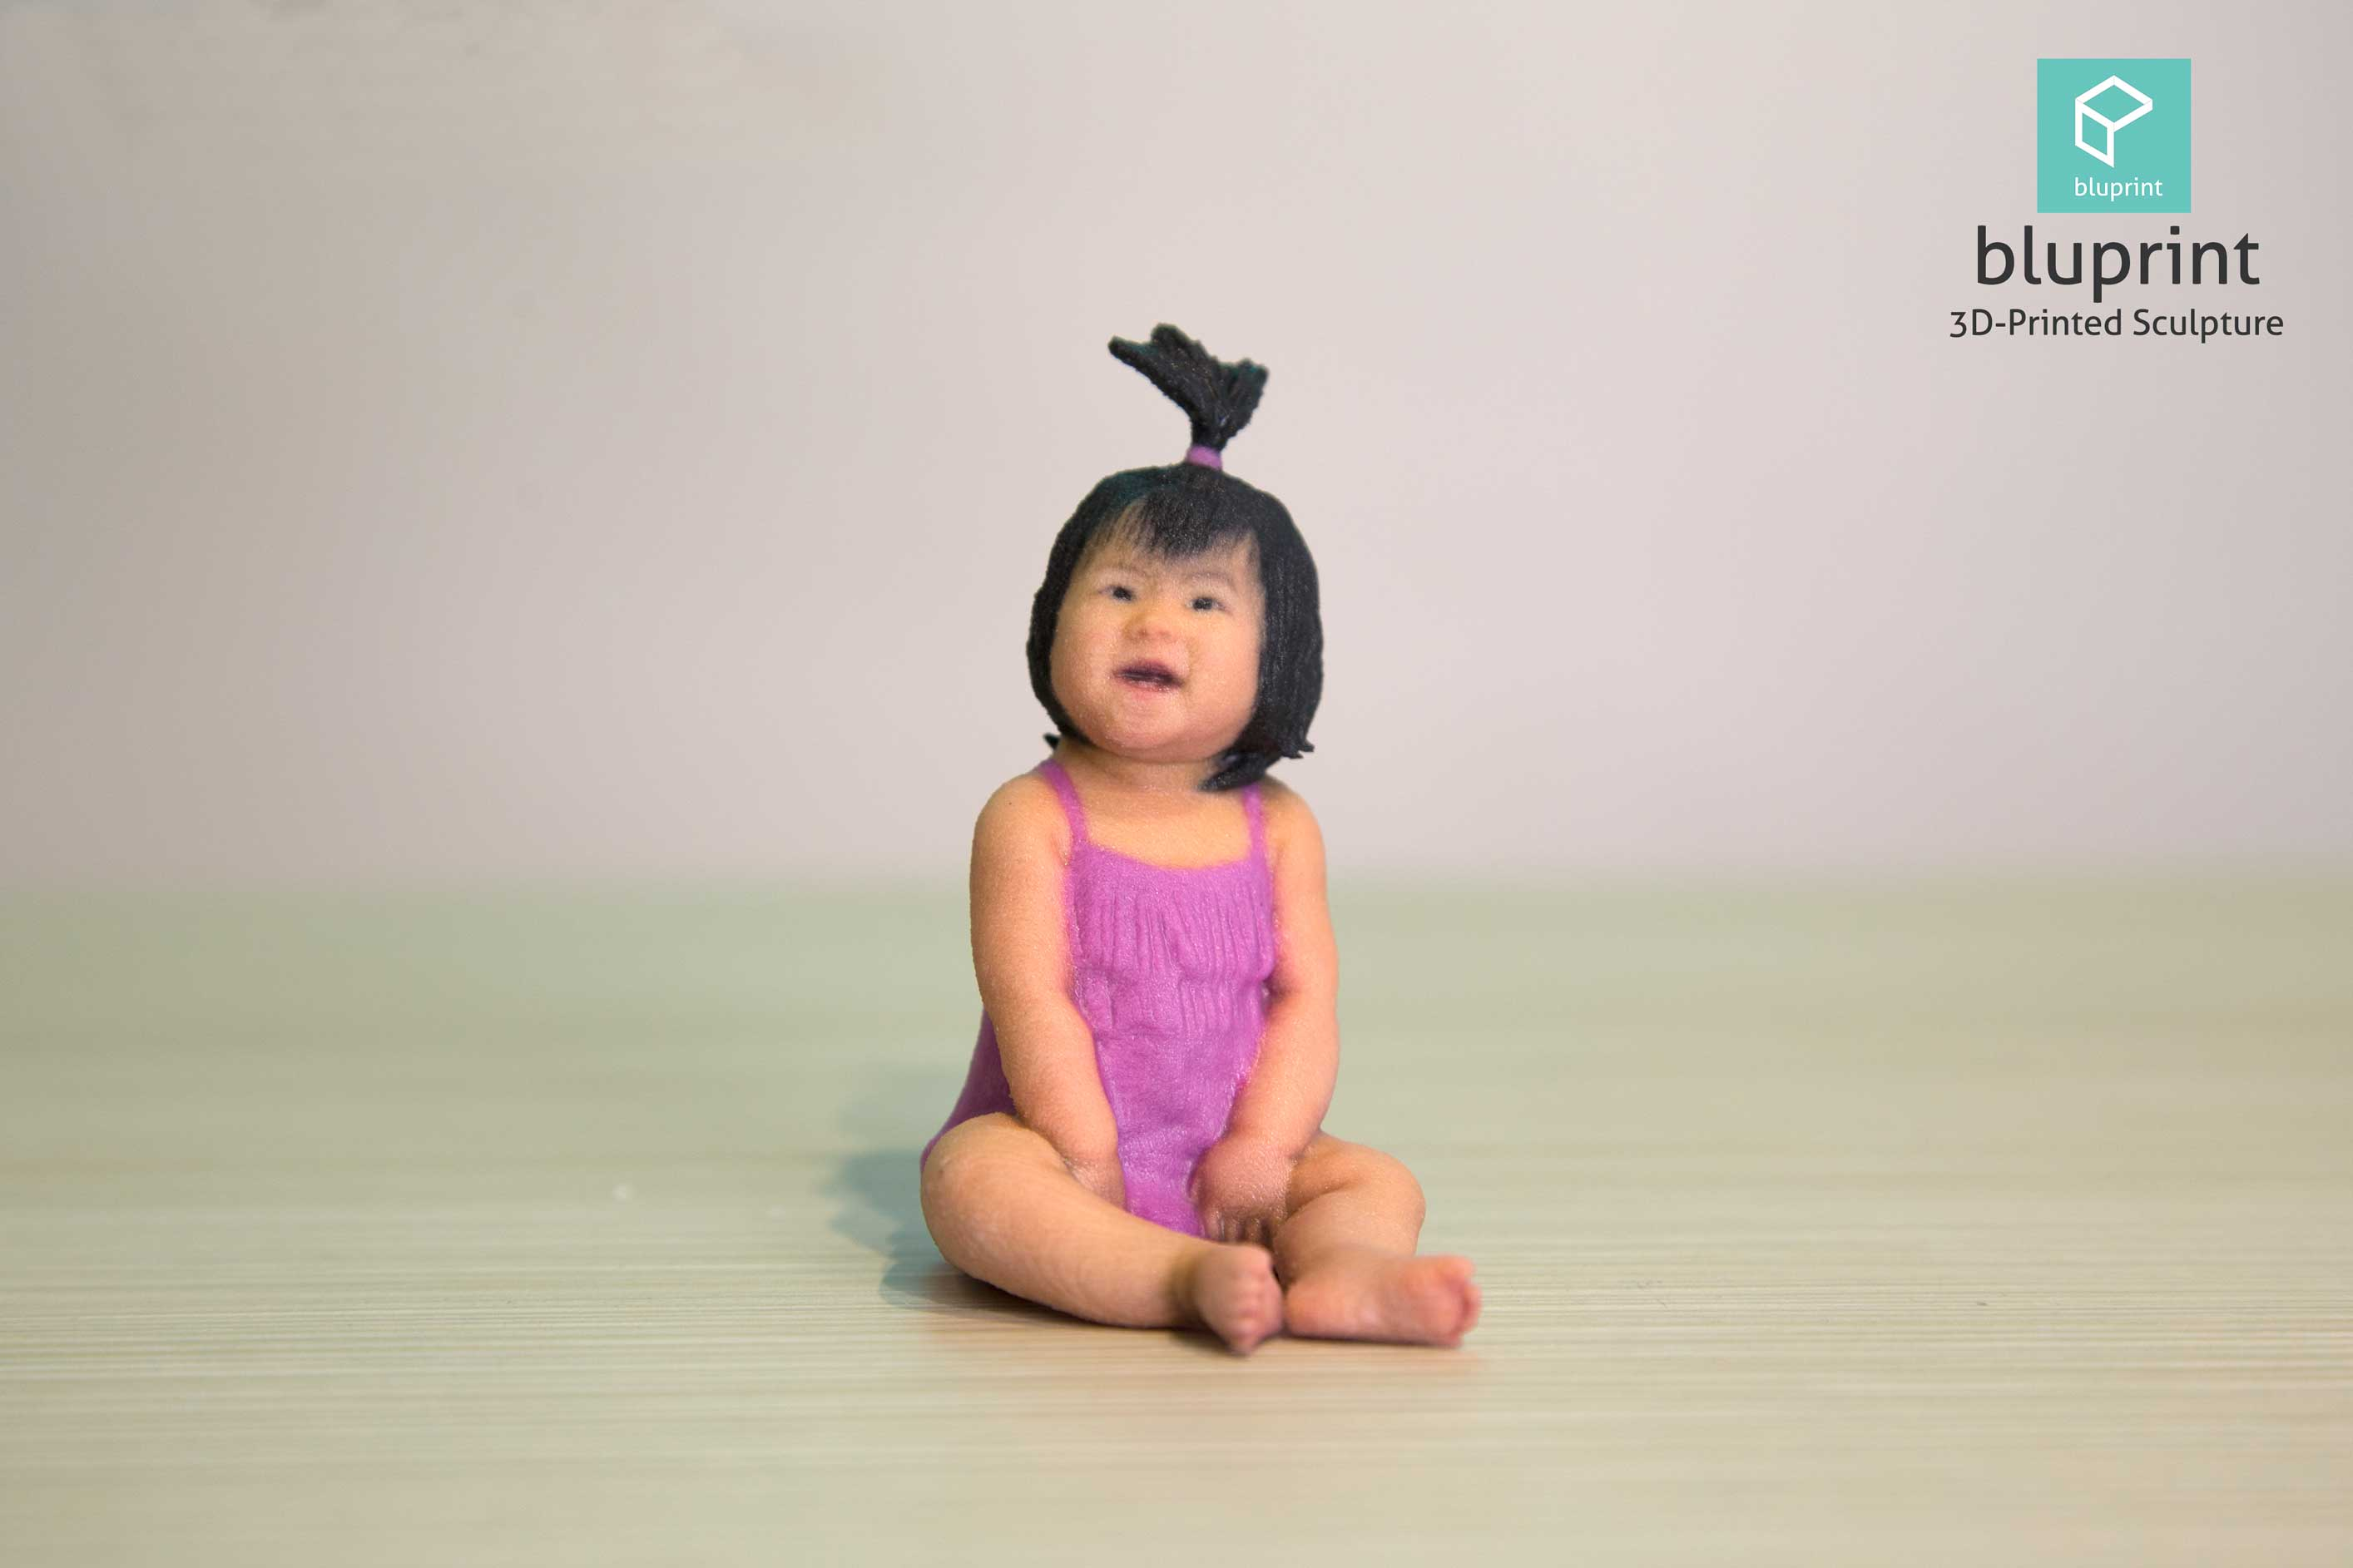 bluprint 3d figure sculpture hong kong baby girl swimsuit